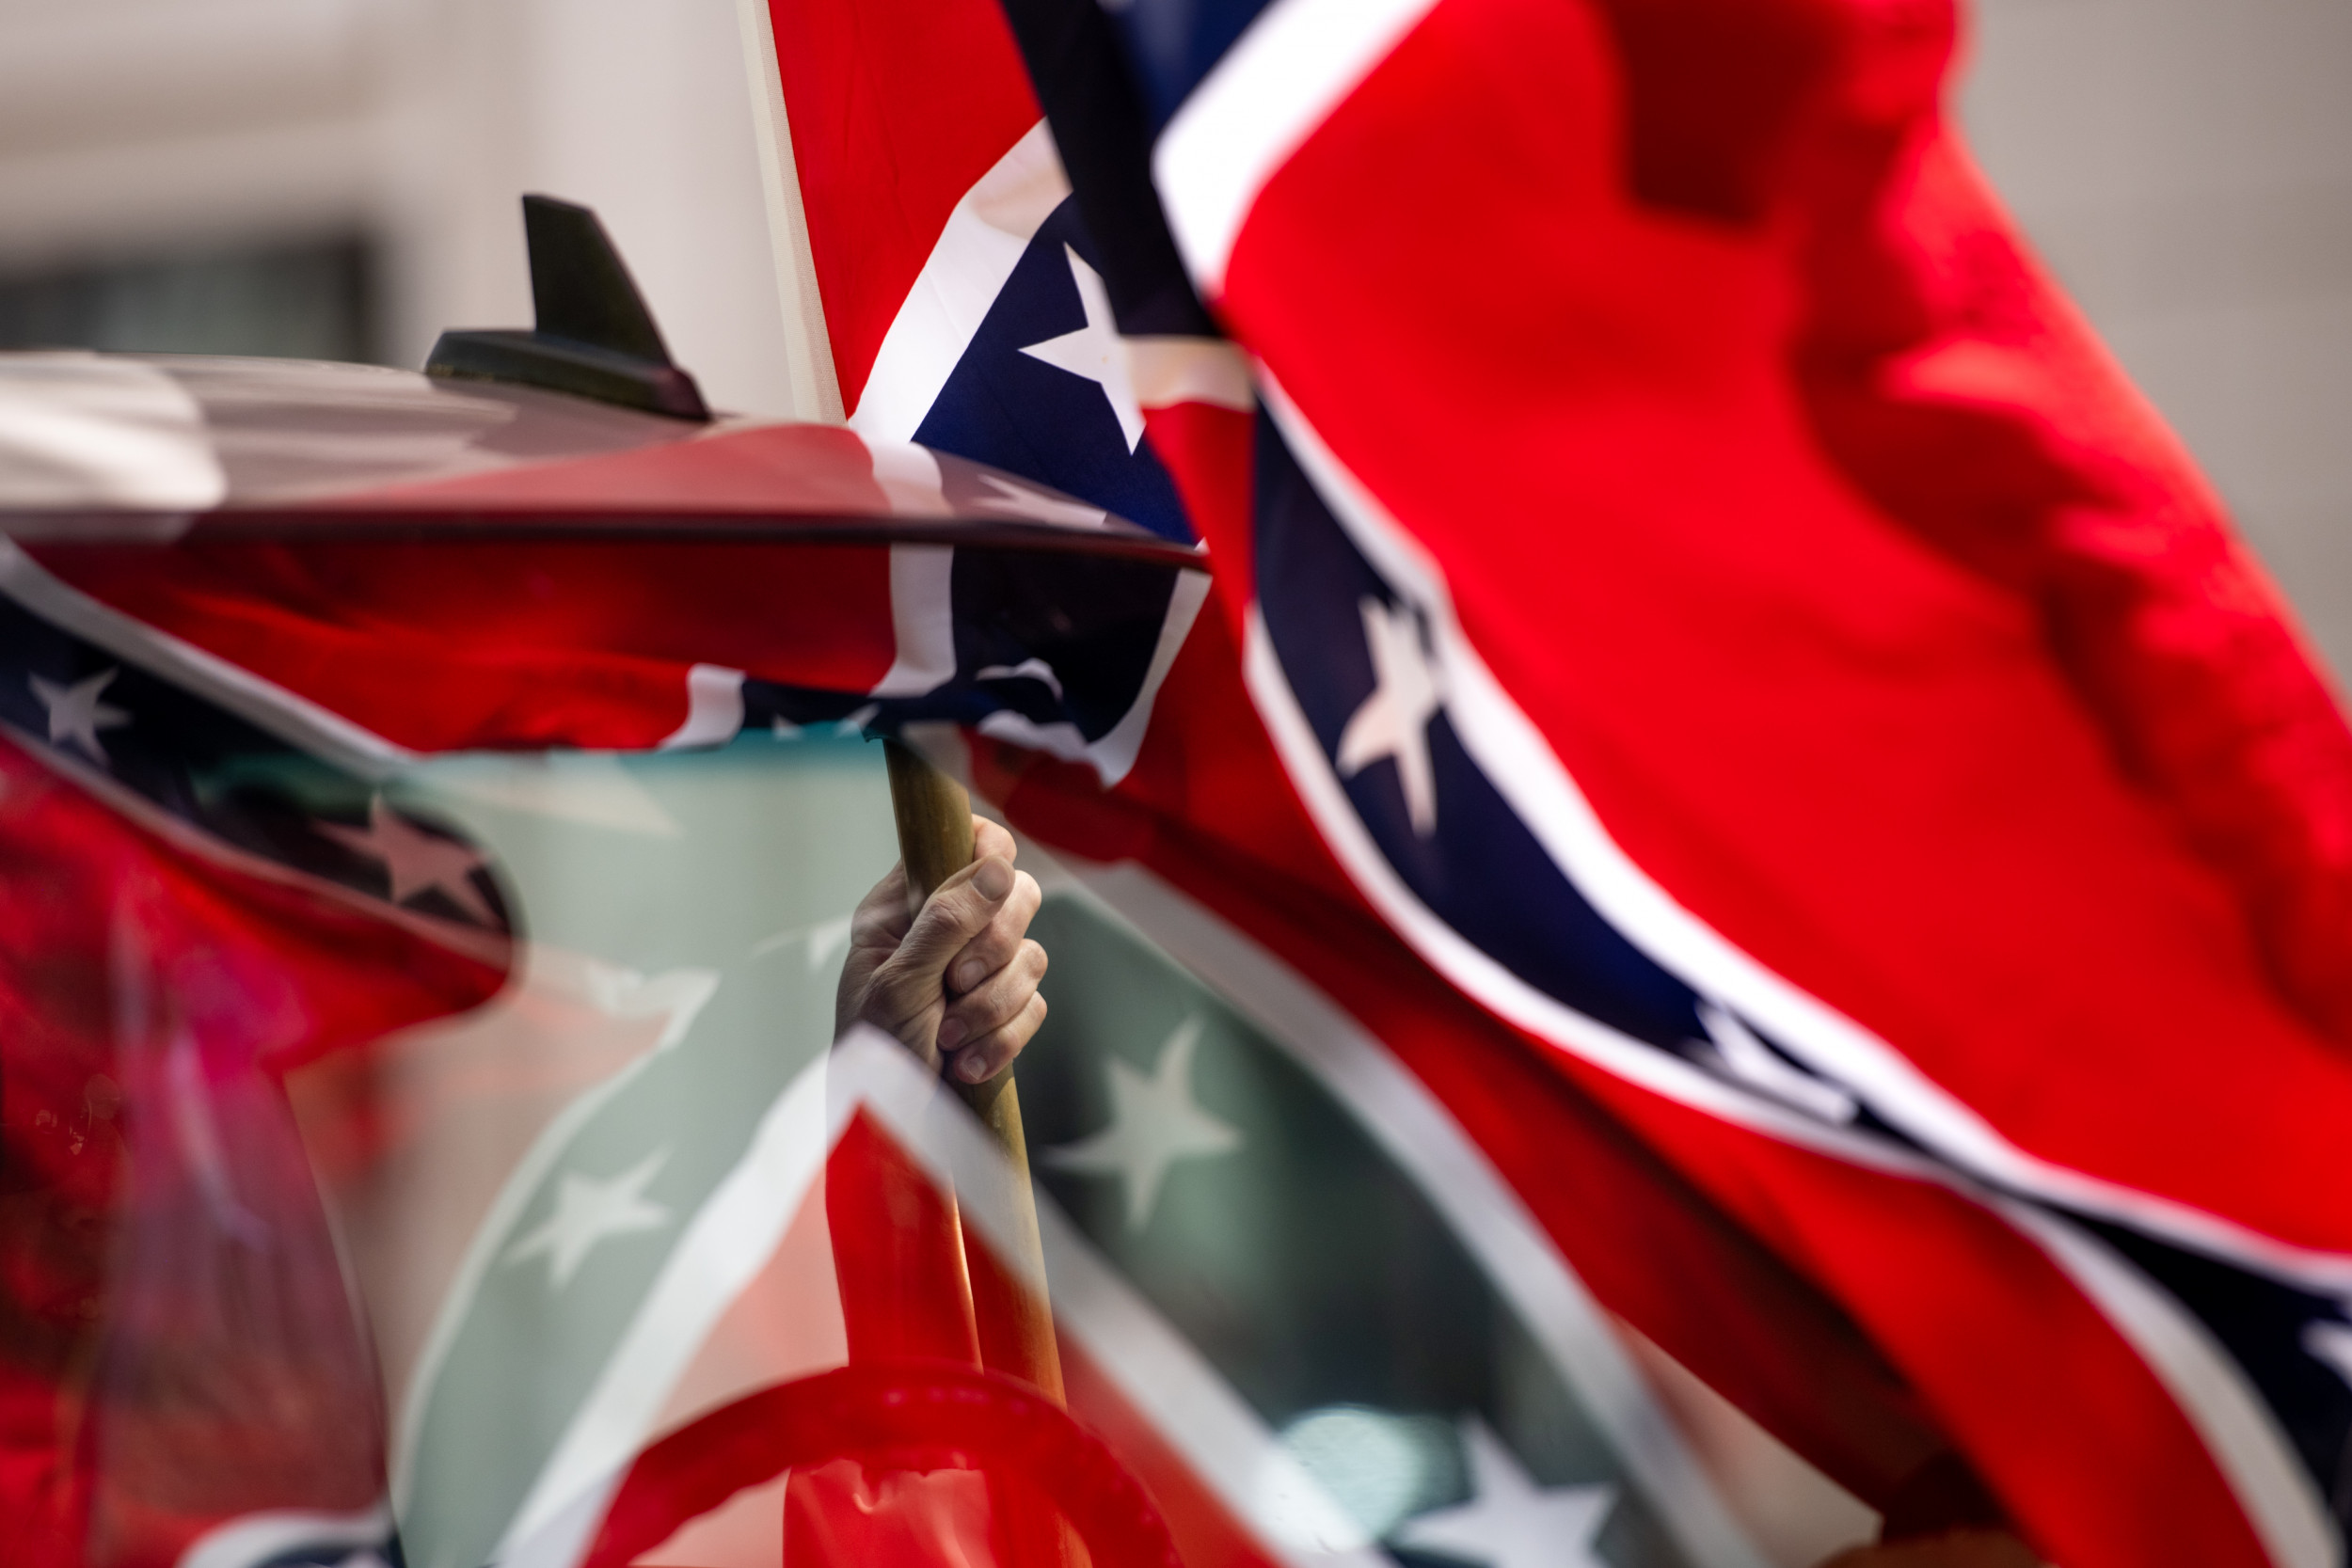 U.S. Marine Corps orders Confederate flag ban including on bumper stickers, mugs and T-shirts